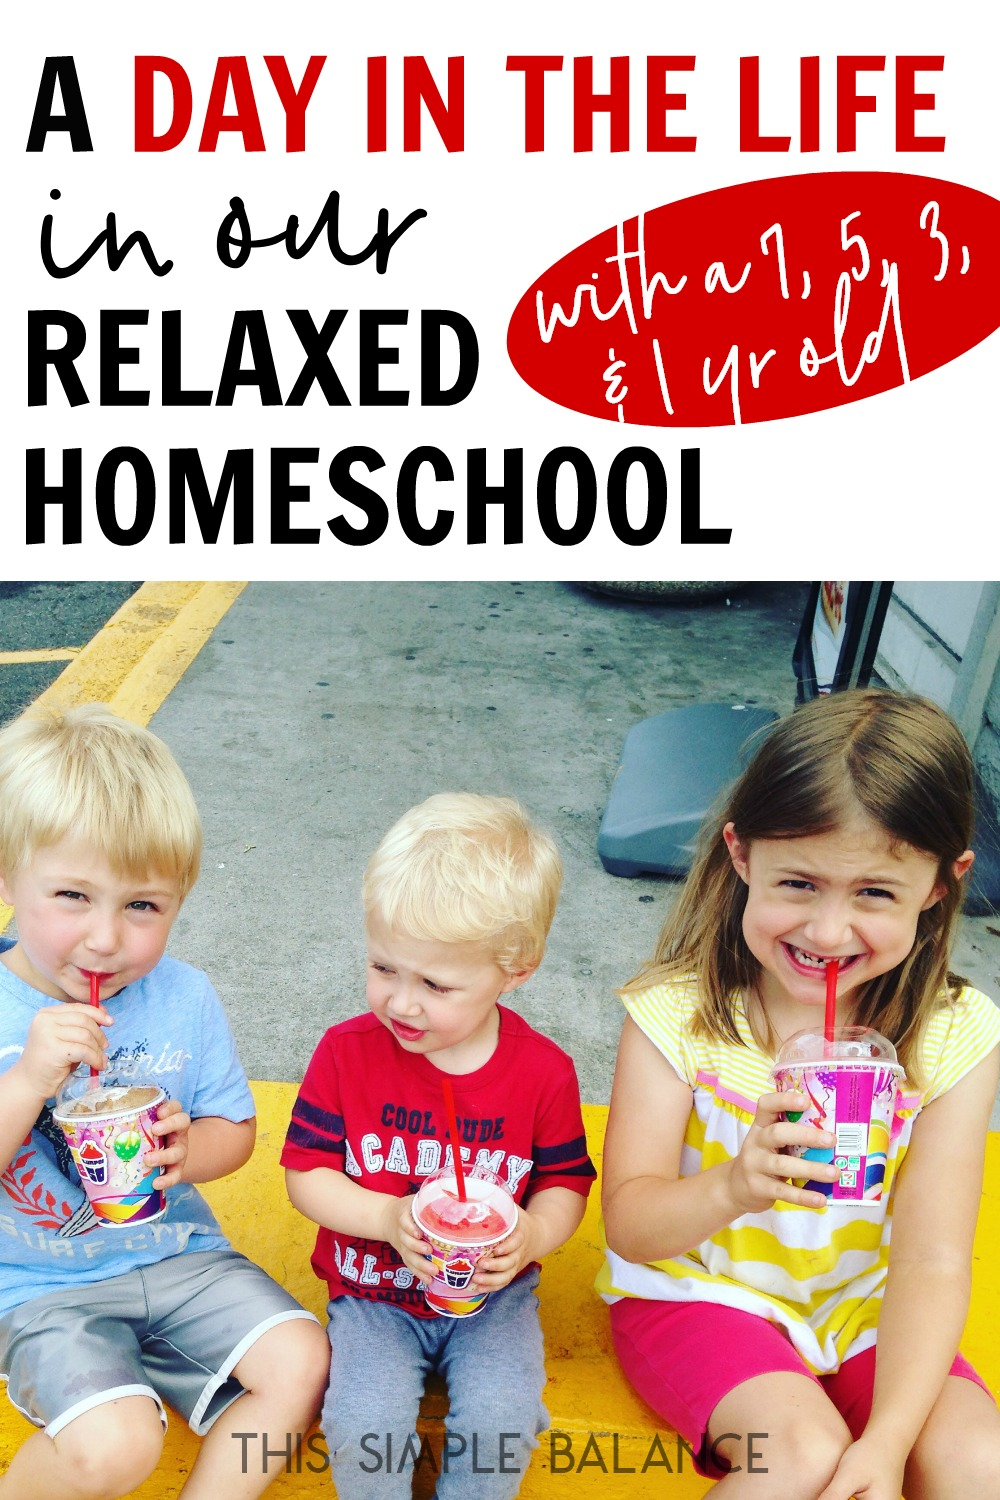 Relaxed homeschooling day in the life: curious about what life looks like in a relaxed homeschool? You'll love this day in the life with a 7, 5, 3 & 1 year old!